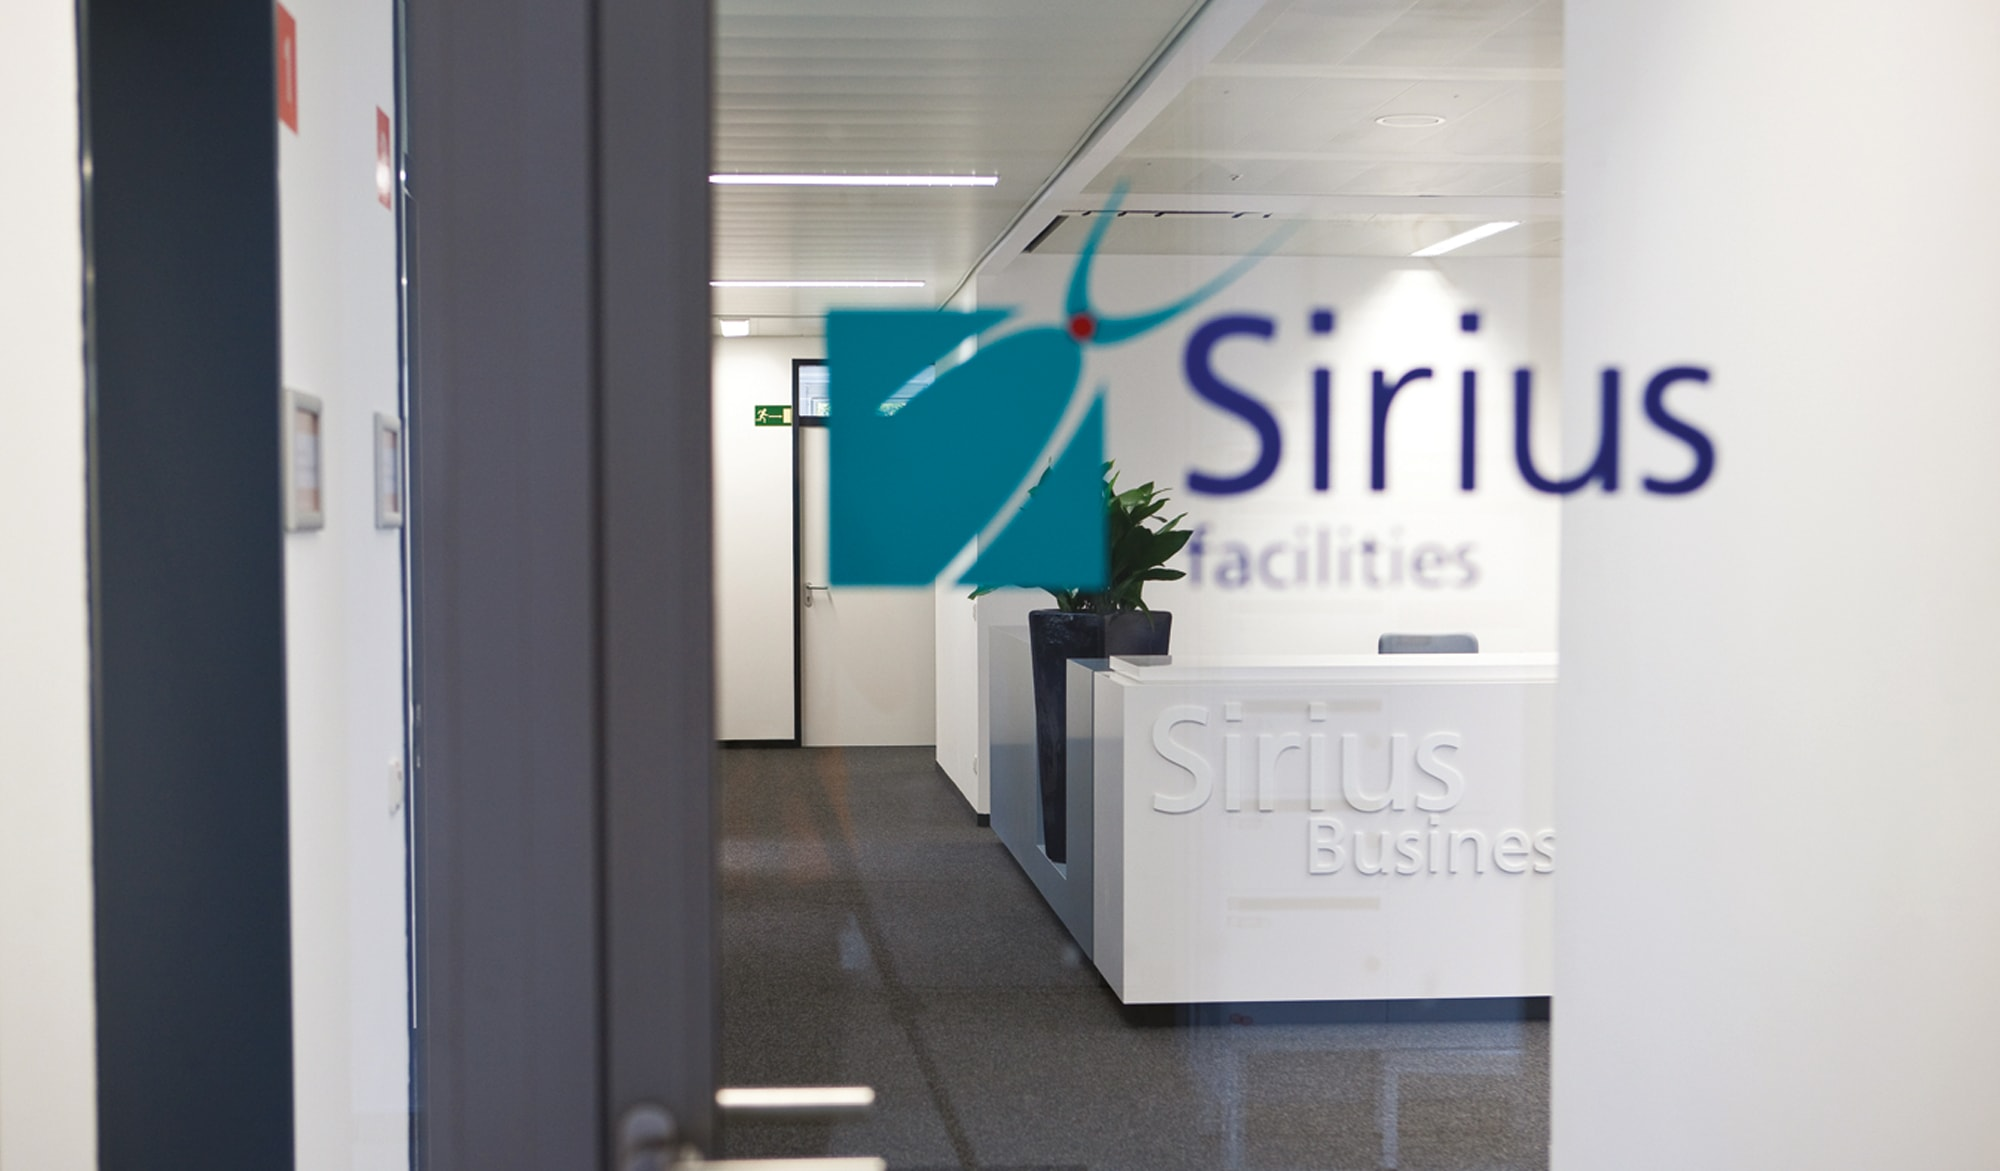 Sirius Facilities signage